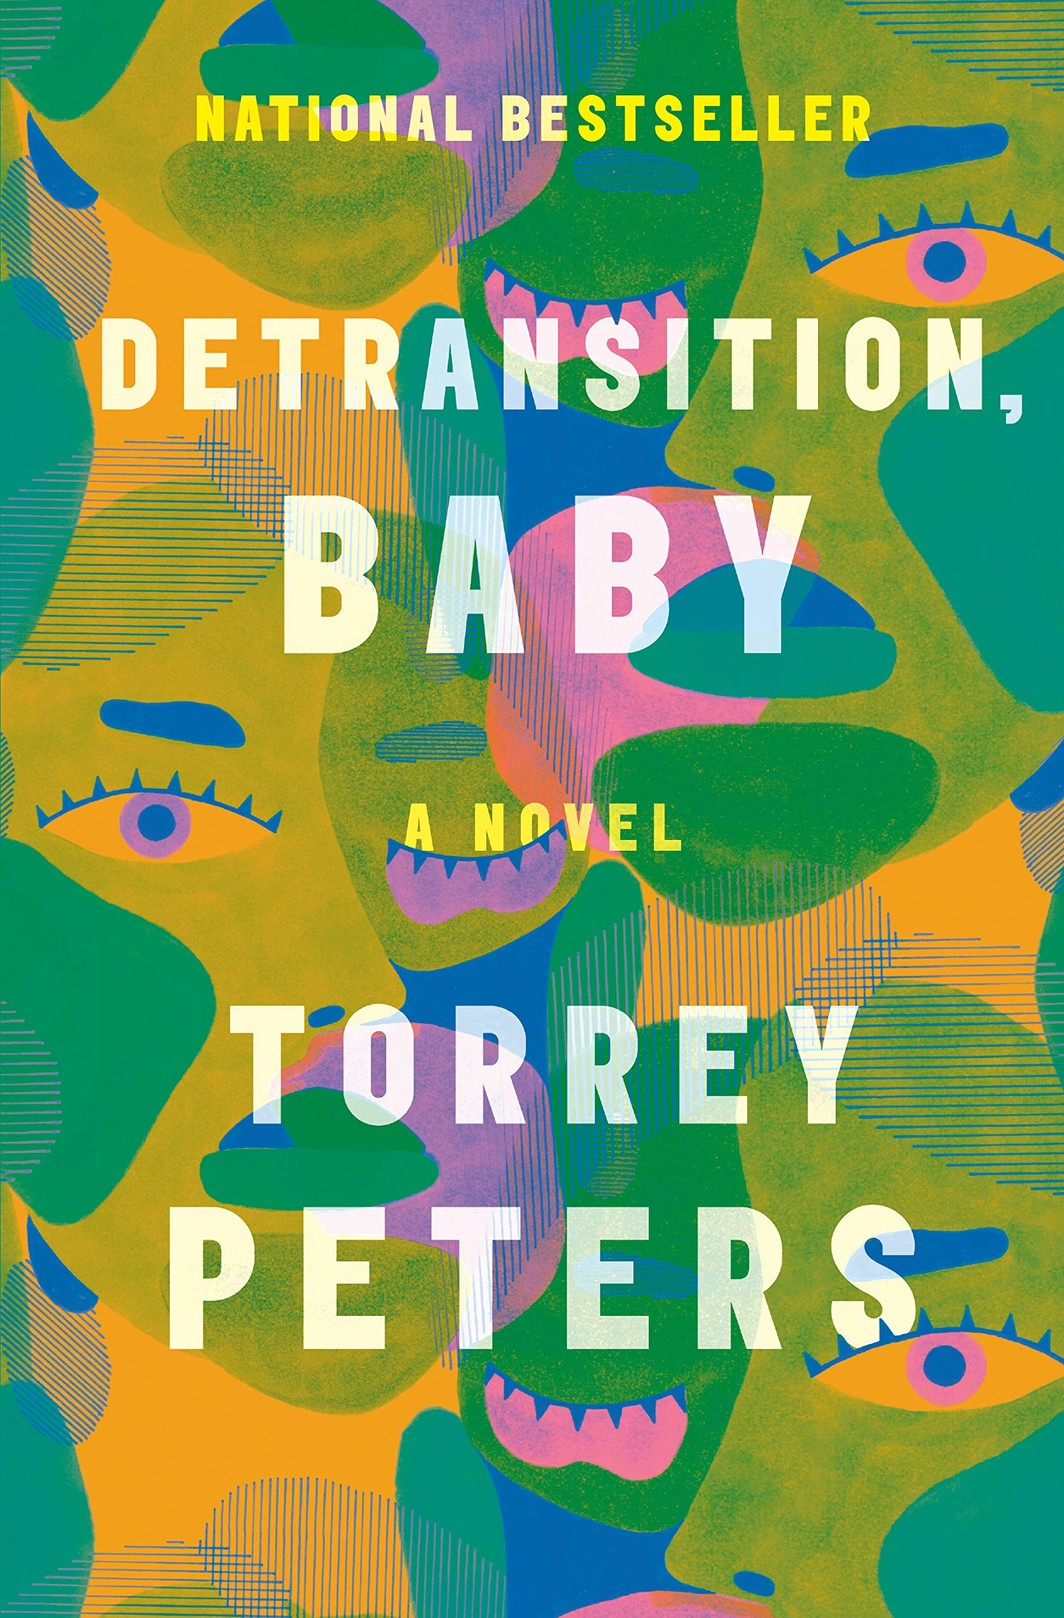 The cover of Detransition, Baby